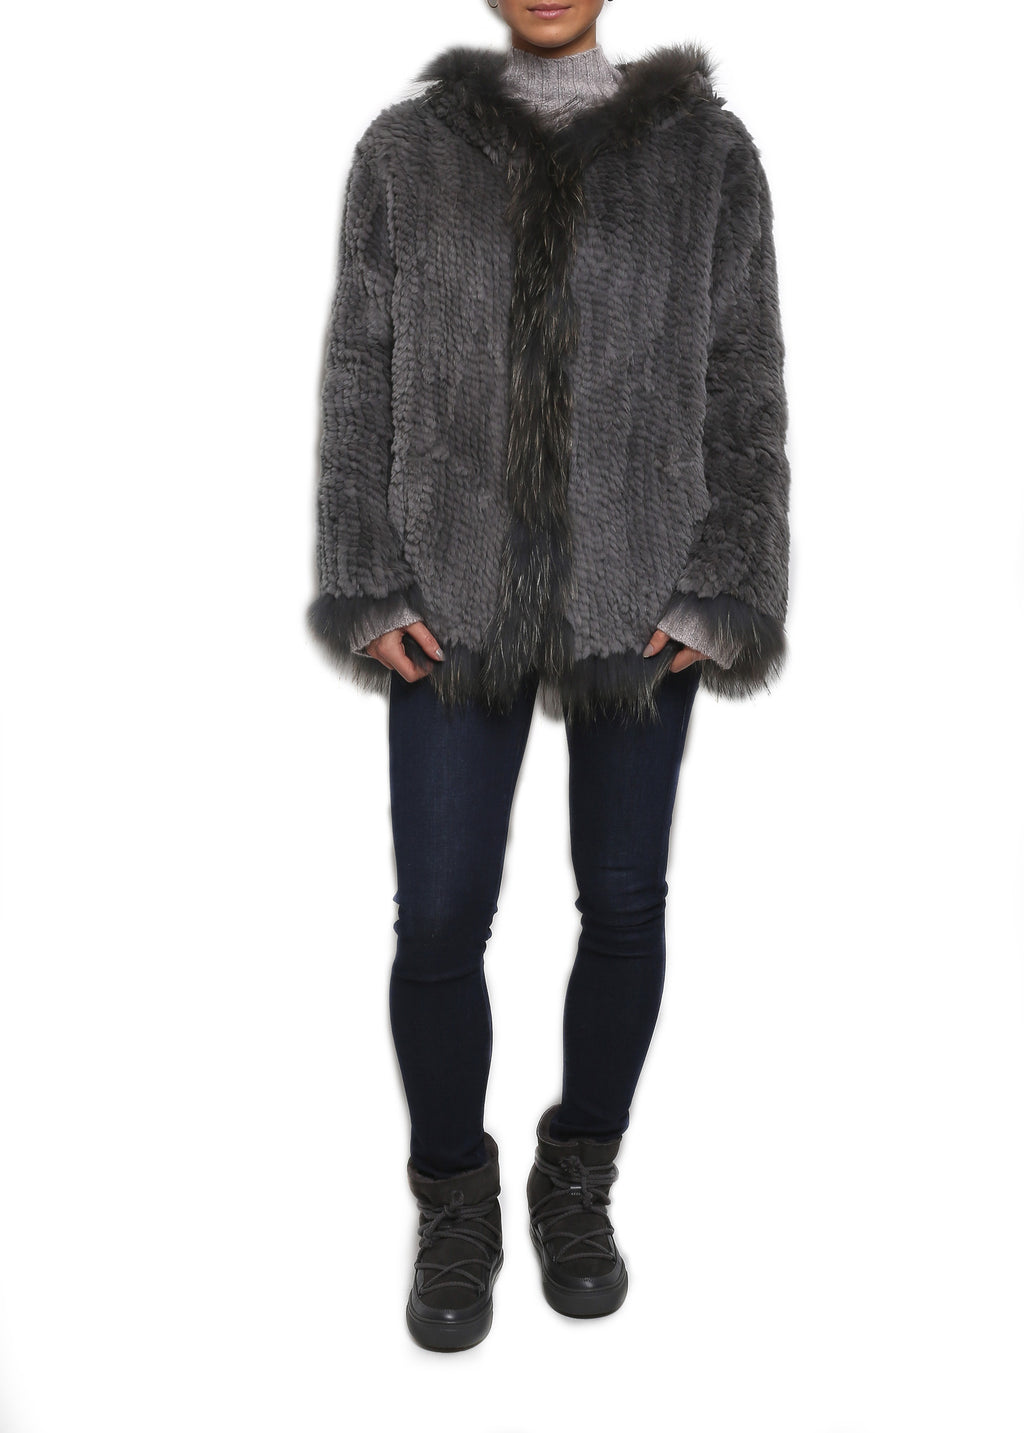 Hooded Knitted Real Rex Rabbit Fur & Raccoon Fur Jacket Jessimara - Jessimara